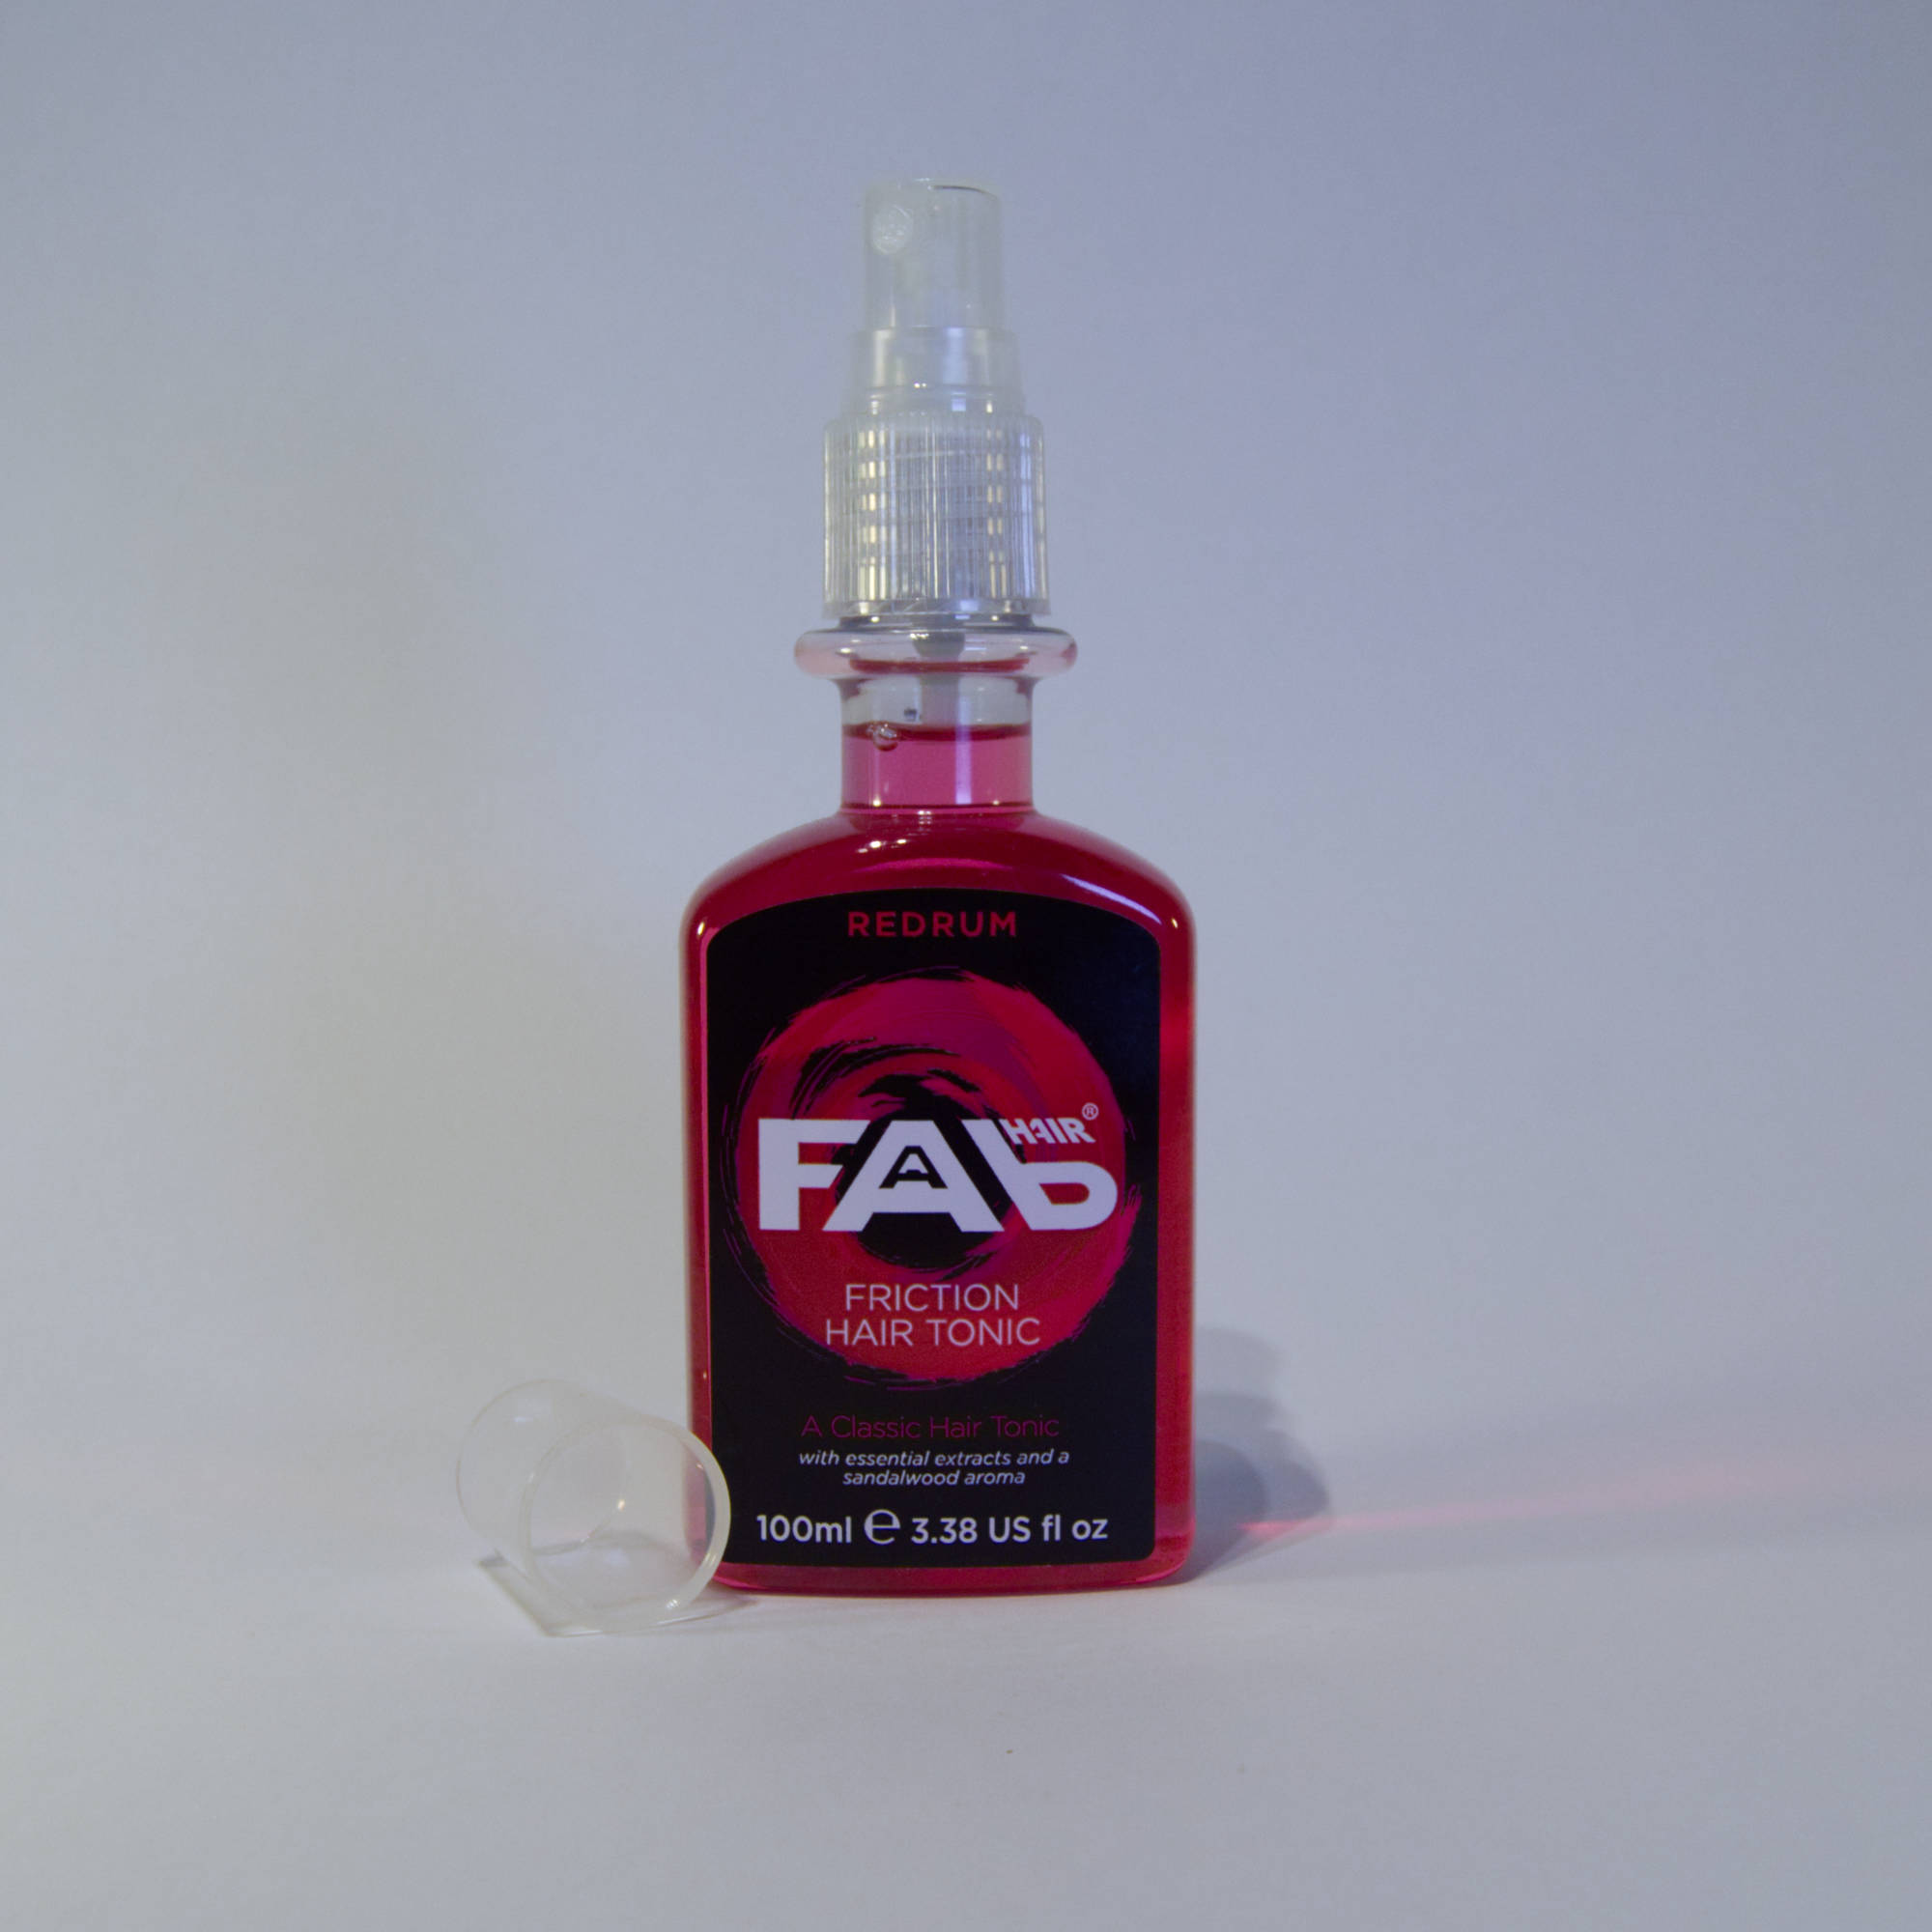 100ml bottle of Redrum flavoured FAB friction hair tonic with Spray Nozzle